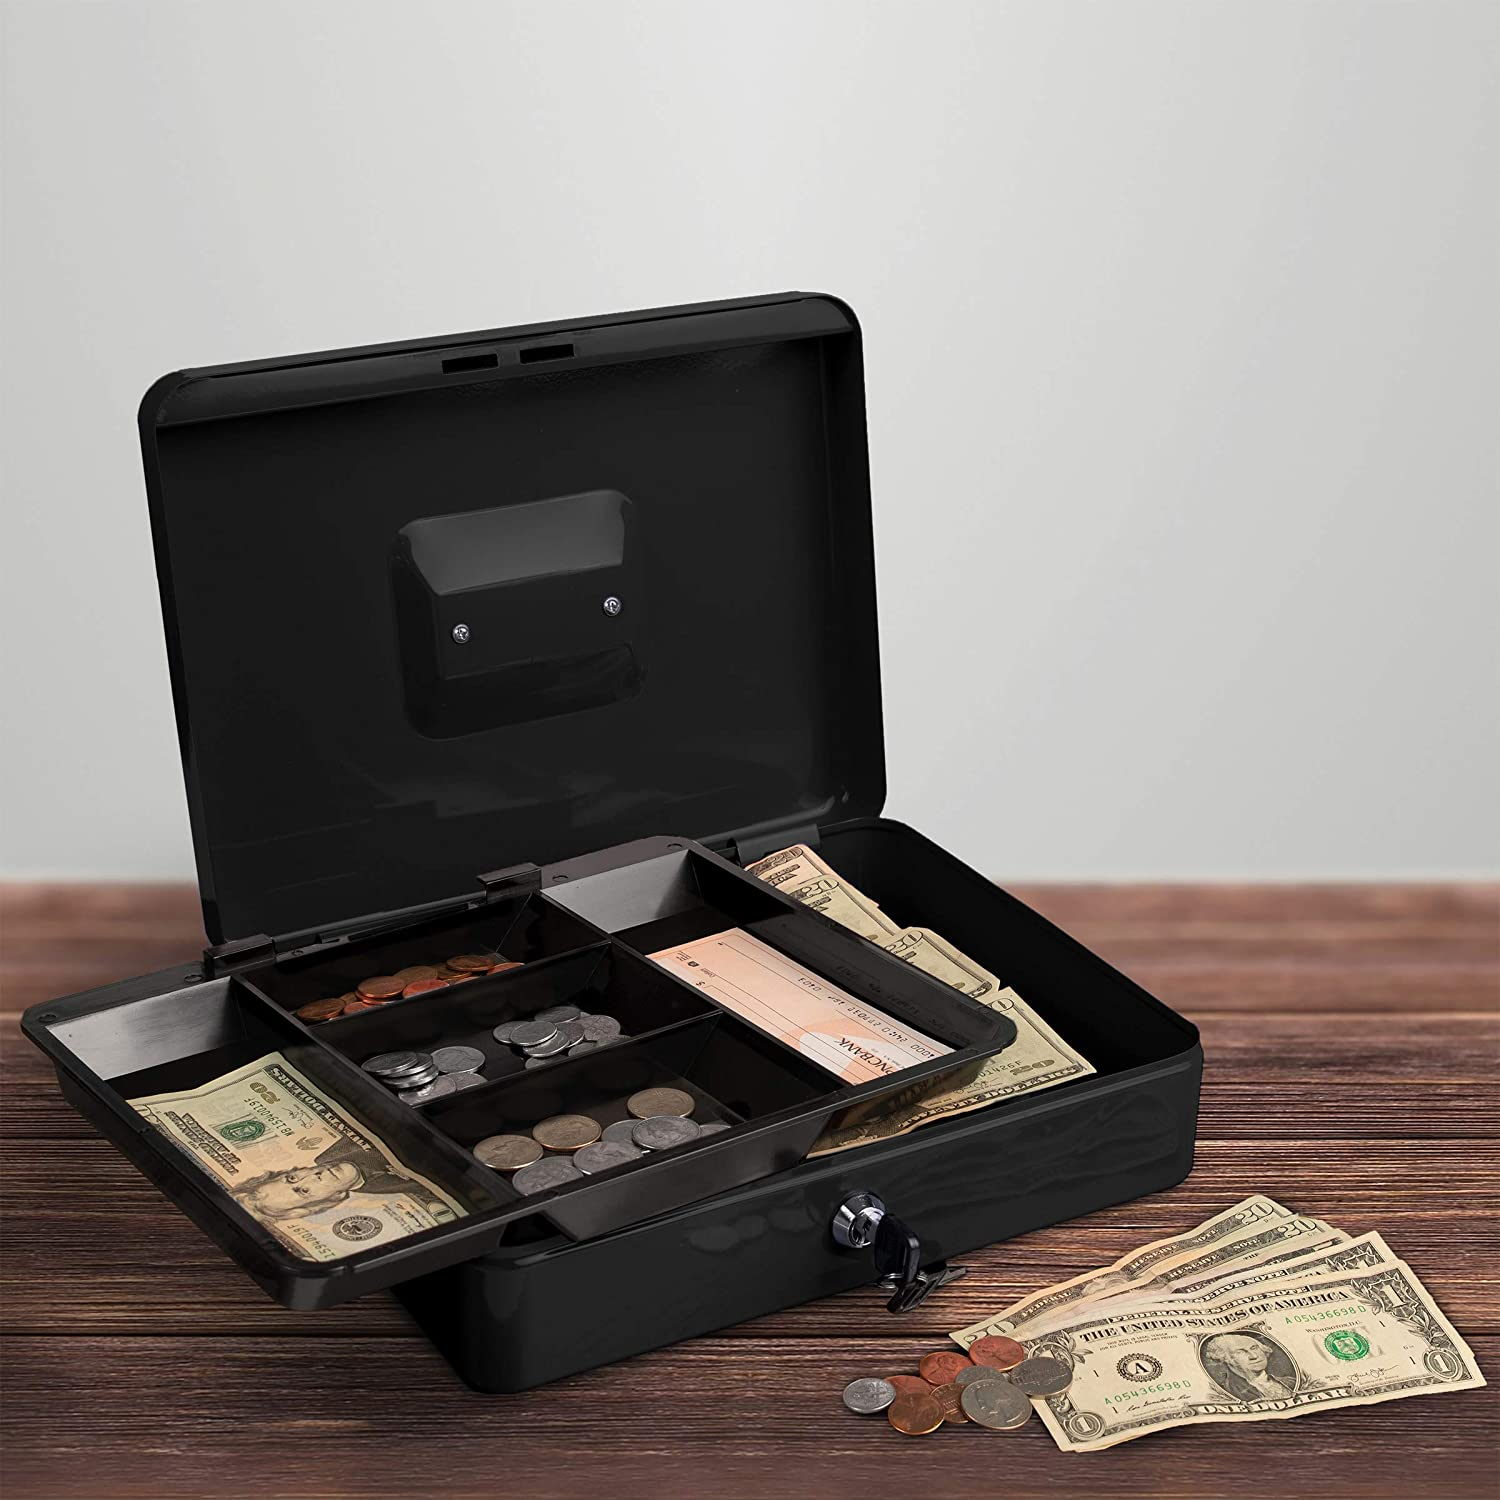 Stalwart Cash Box – Locking Petty Removable Safe 67% OFF of fixed price with OFFicial